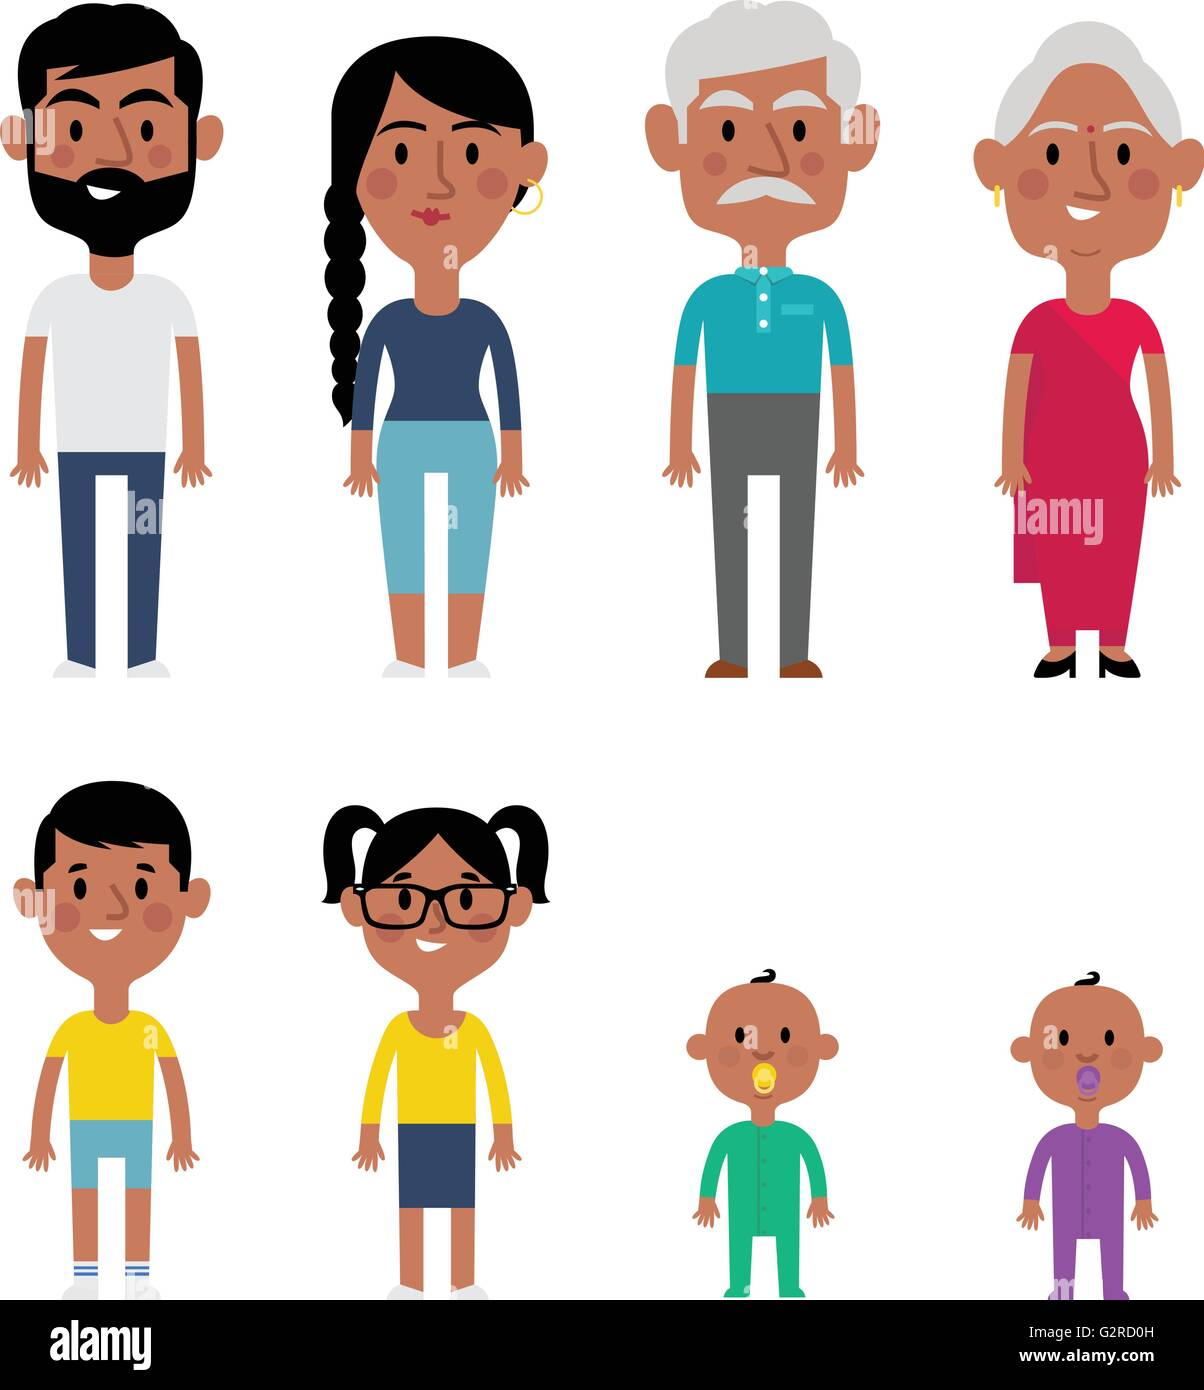 Flat Vector Indian Family Members. Parents, Grandparents, Children and Baby - Stock Image